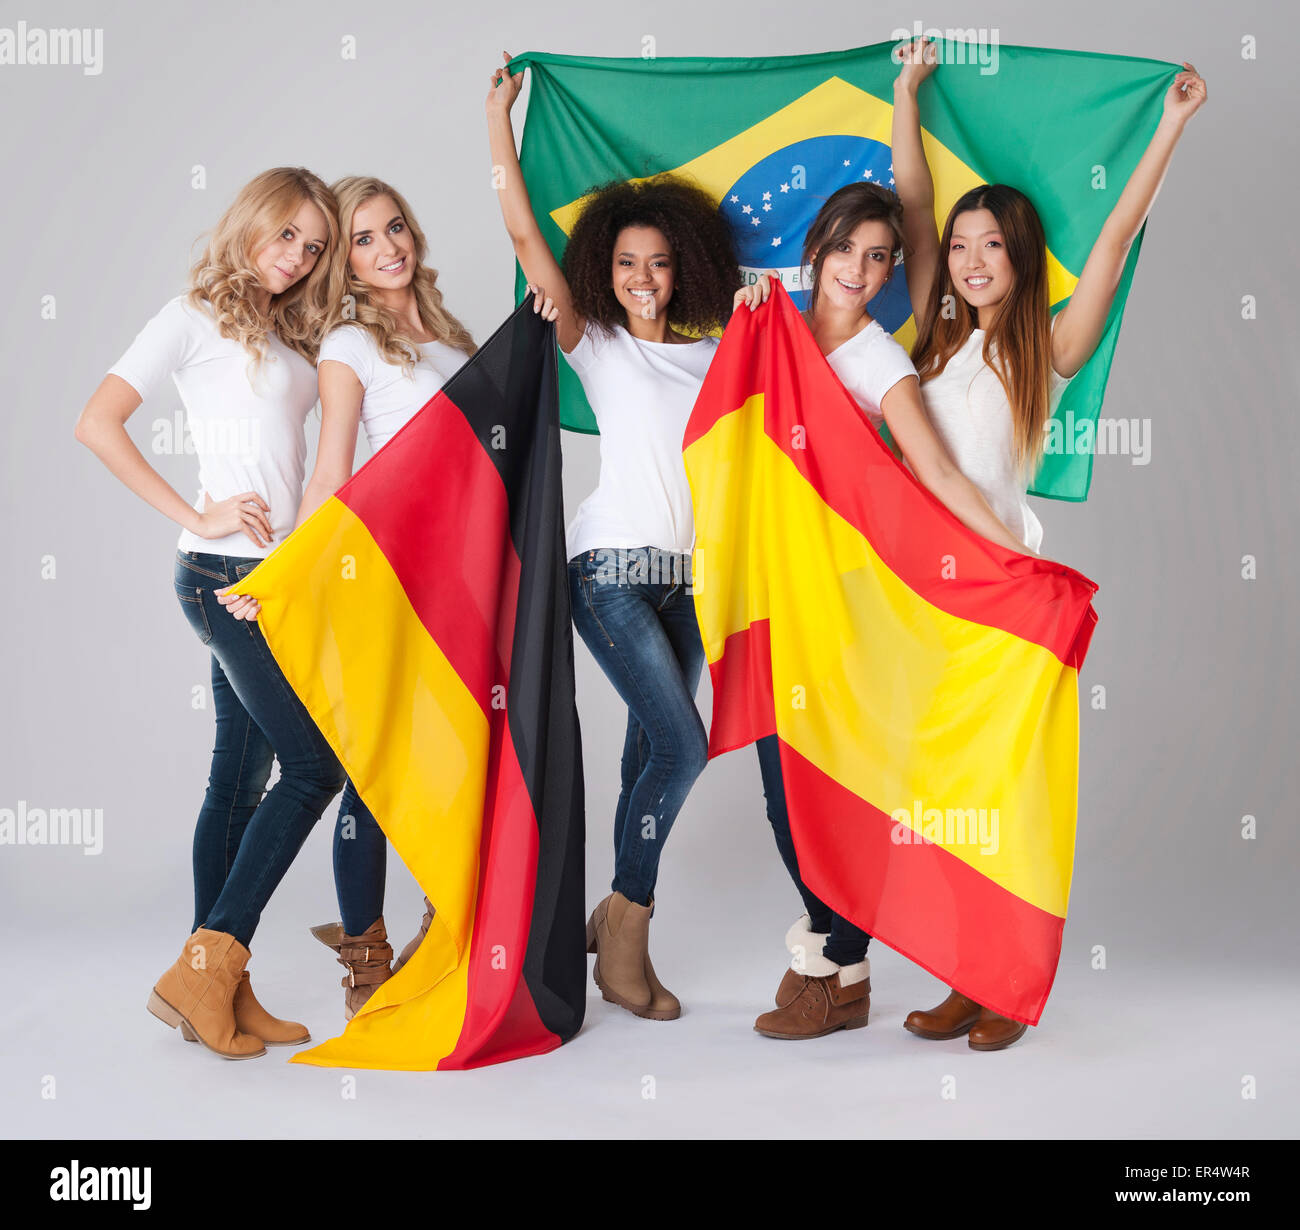 Different origins of young women. Debica, Poland - Stock Image